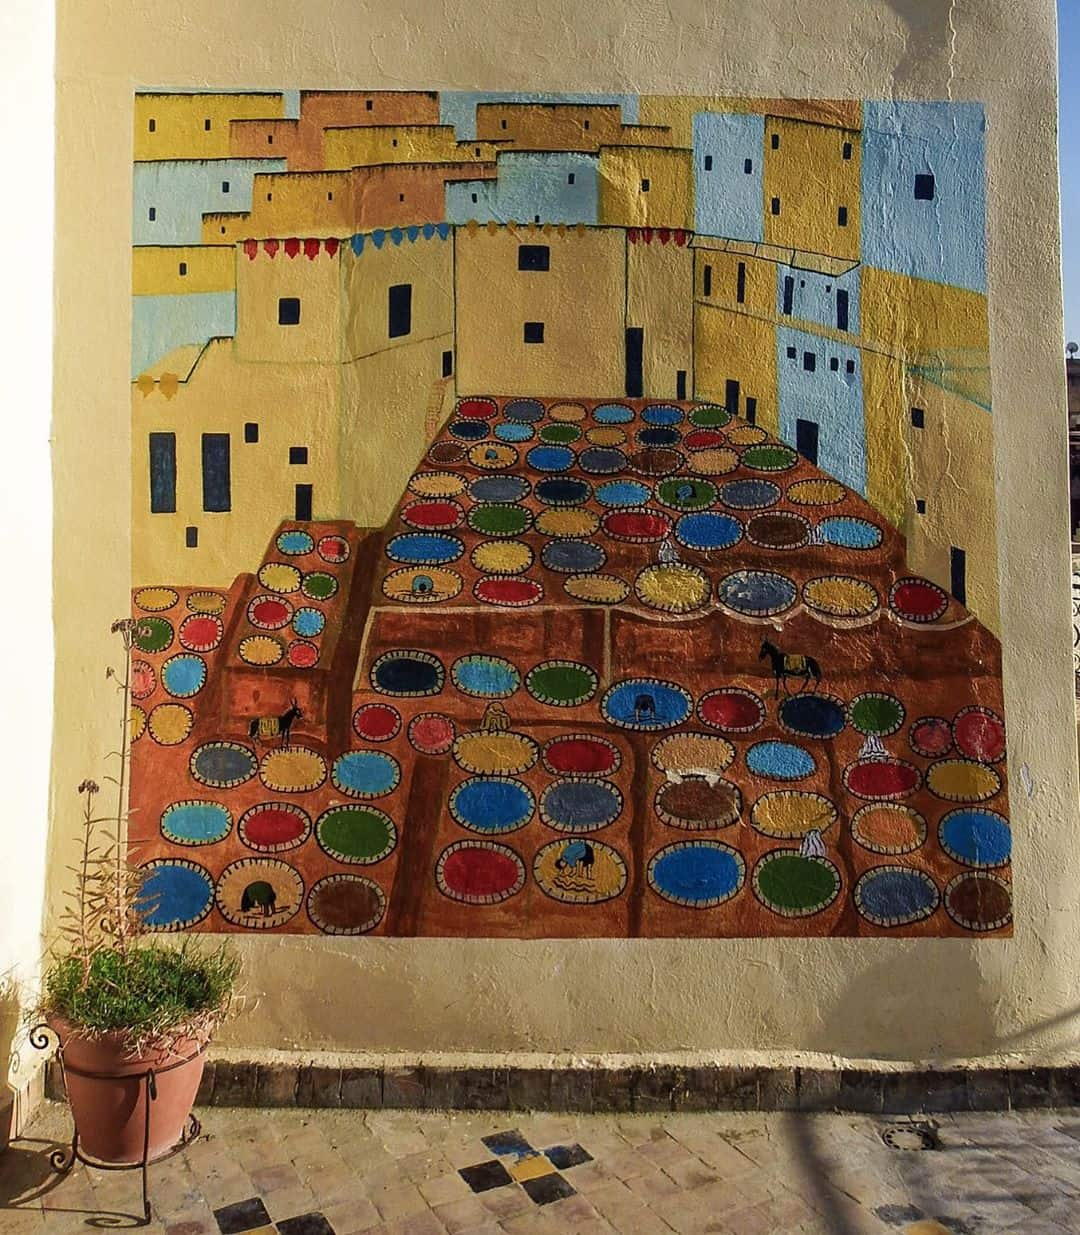 Morocco travel itinerary: Fes tanneries